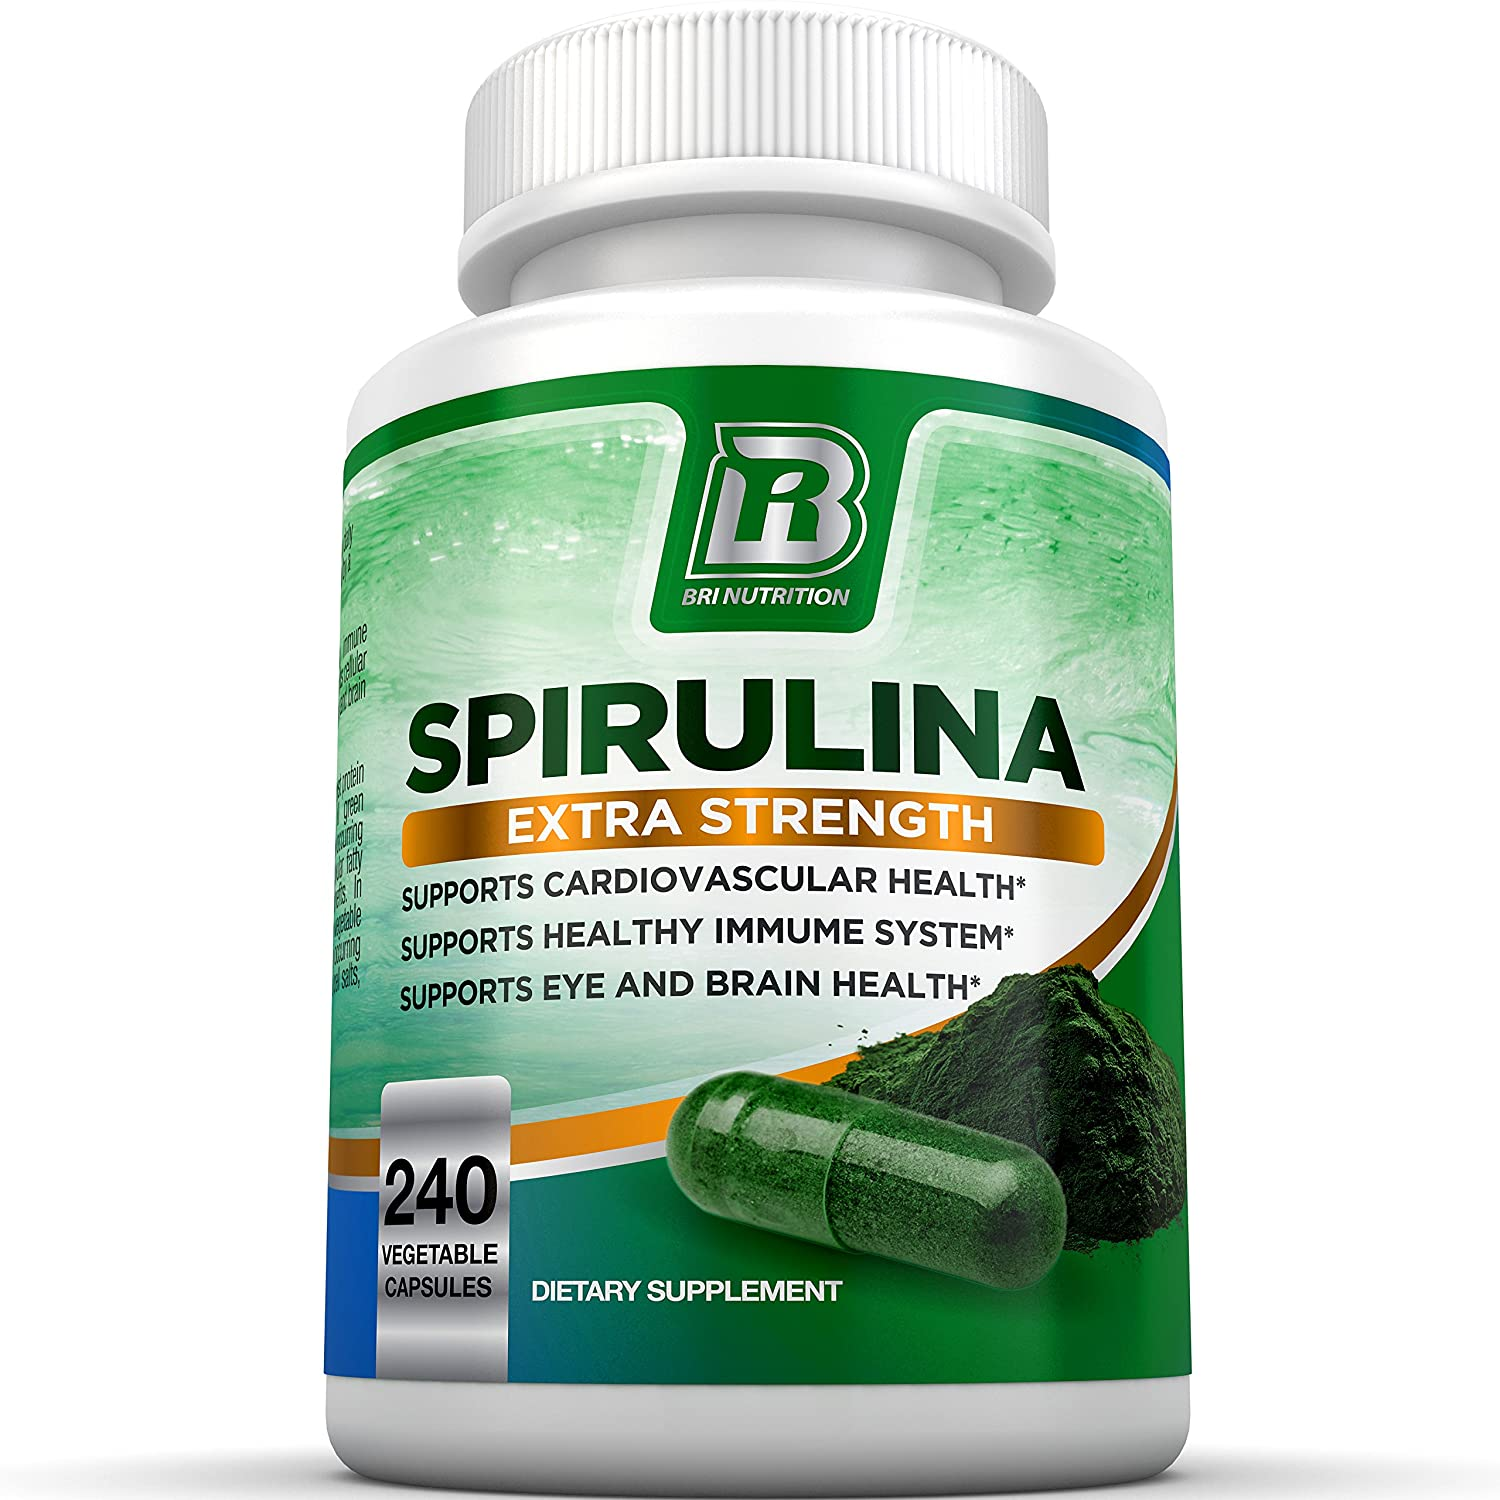 BRI Spirulina 2000mg Maximum Strength Premium Quality Spirulina Superfood Powder, Packed w Antioxidants, Protein and Vitamins in Easy to Swallow Vegetable Cellulose Capsules (240 Count)